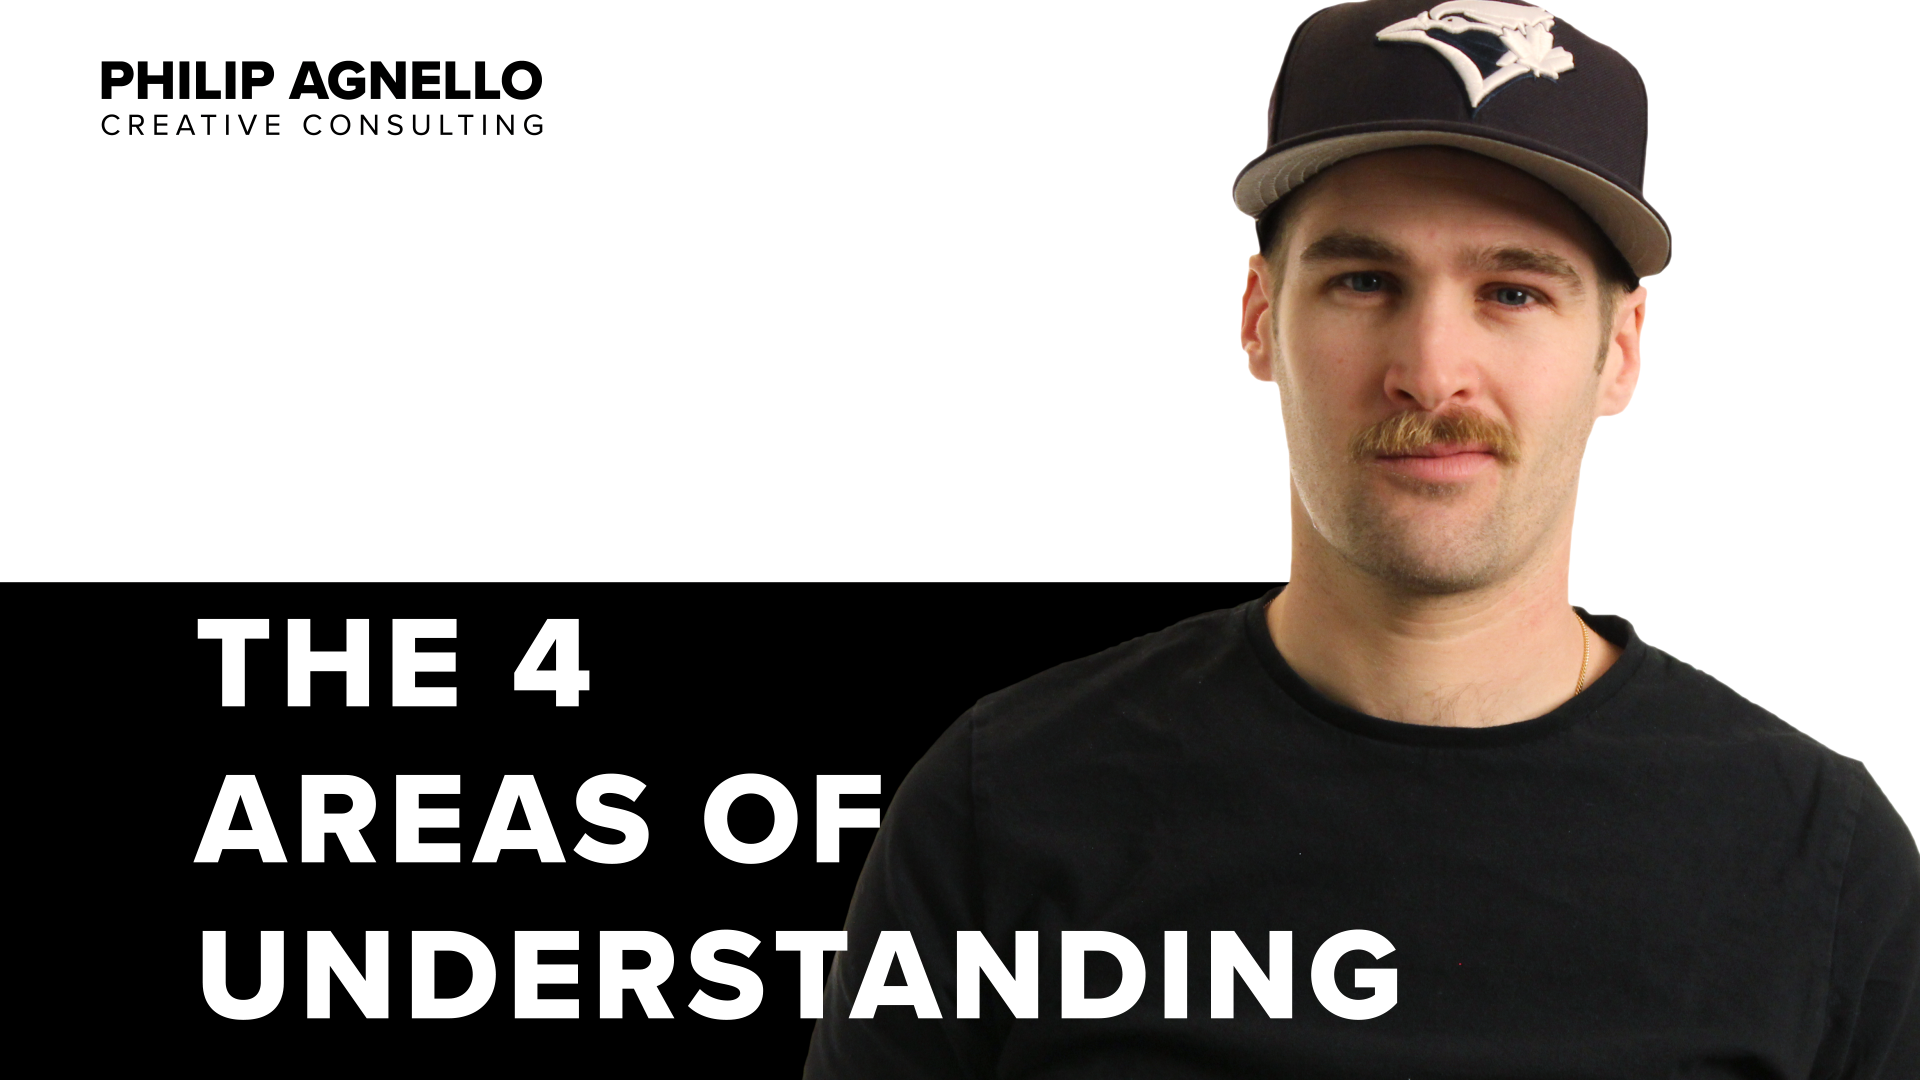 Title: The 4 Areas of Understanding